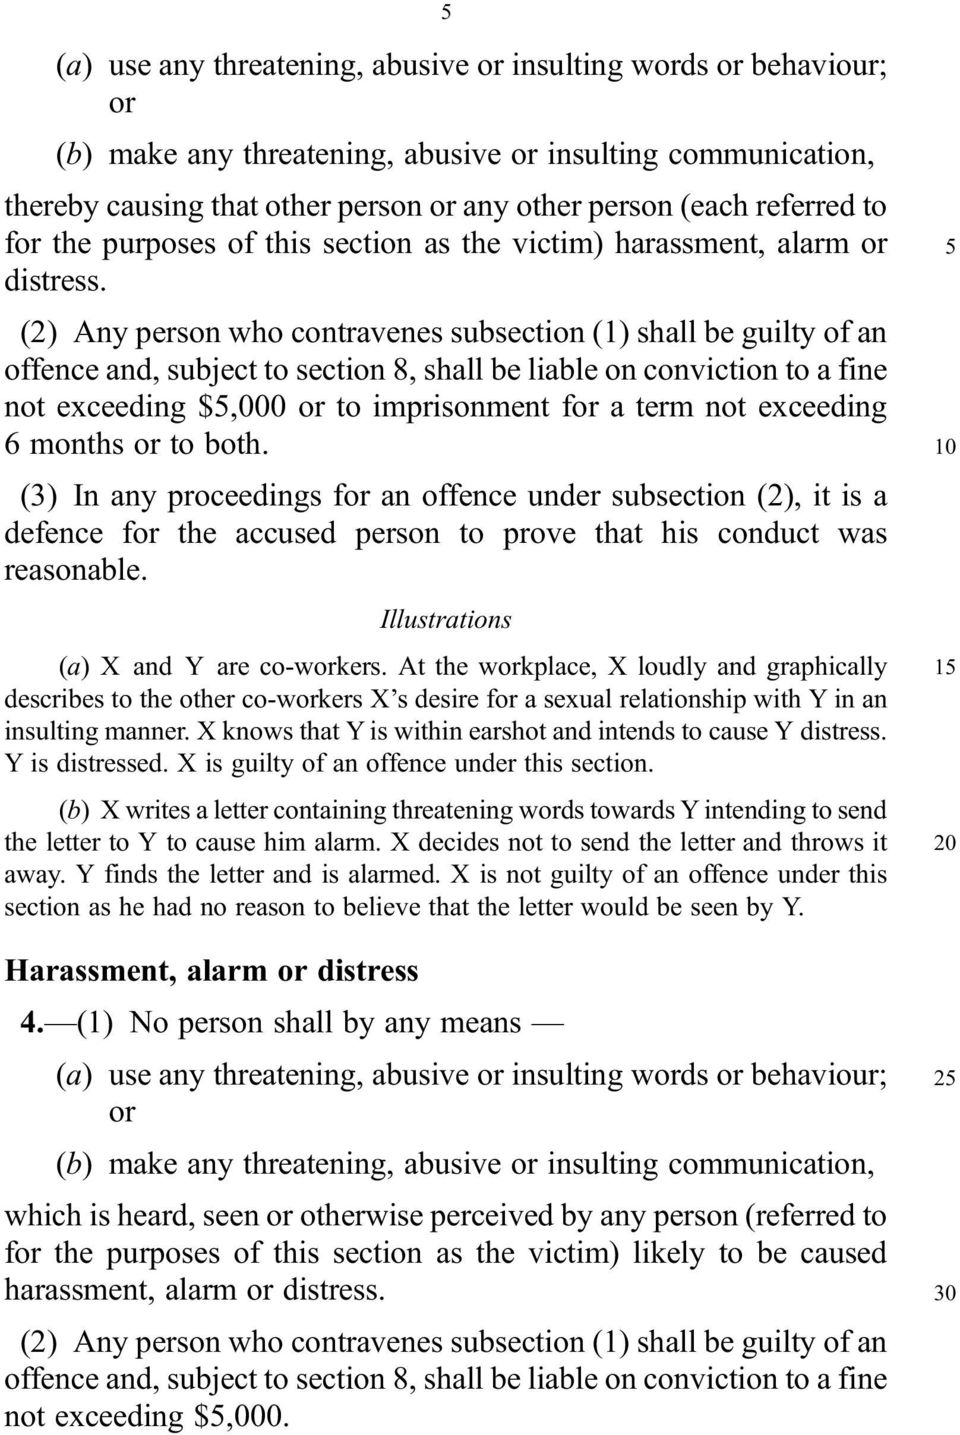 (2) Any person who contravenes subsection (1) shall be guilty of an offence and, subject to section 8, shall be liable on conviction to a fine not exceeding $5,000 or to imprisonment for a term not